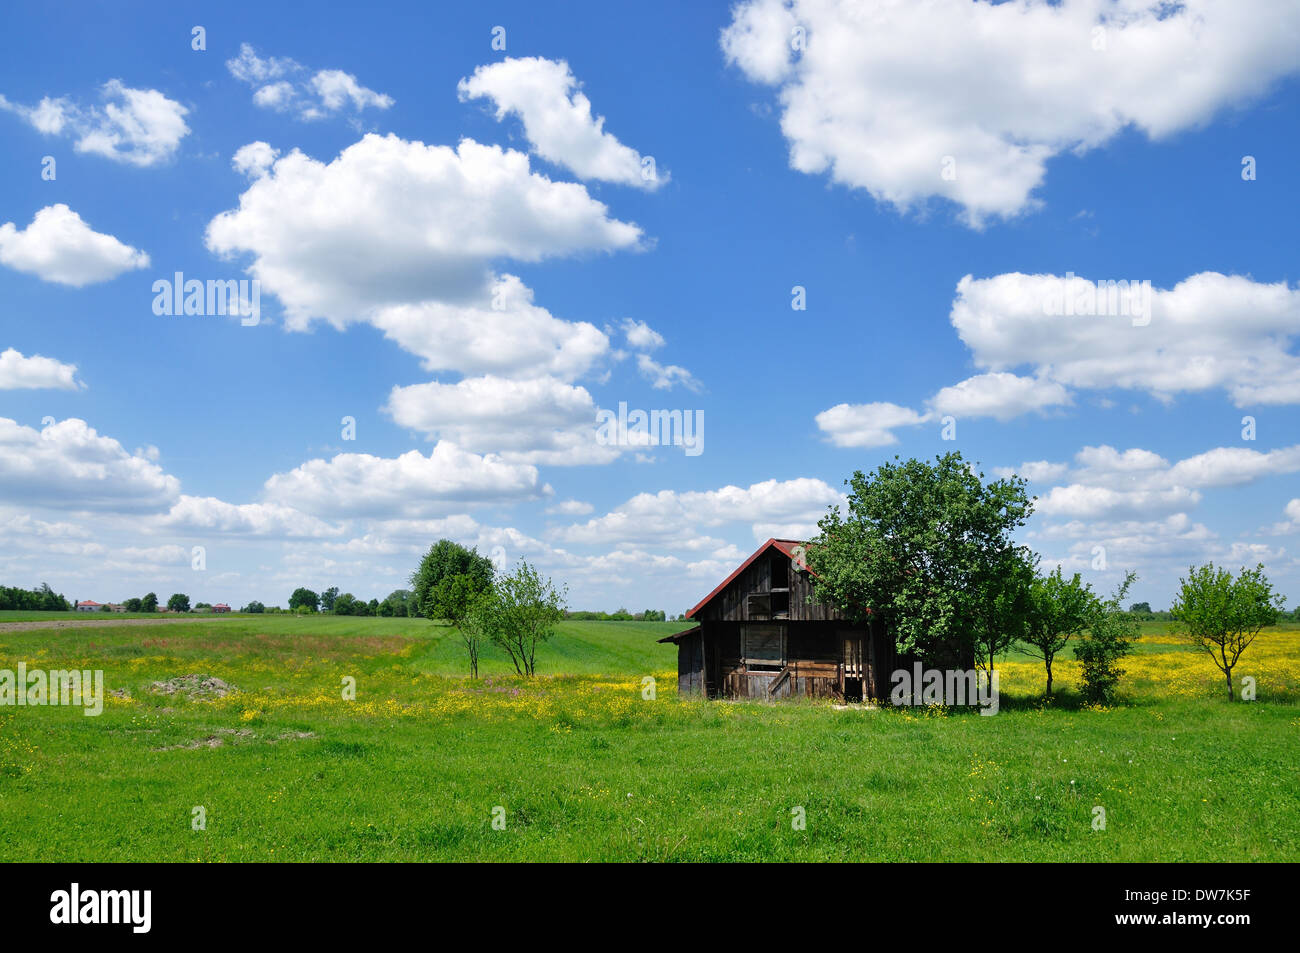 Landscape with old wooden cabin - Stock Image